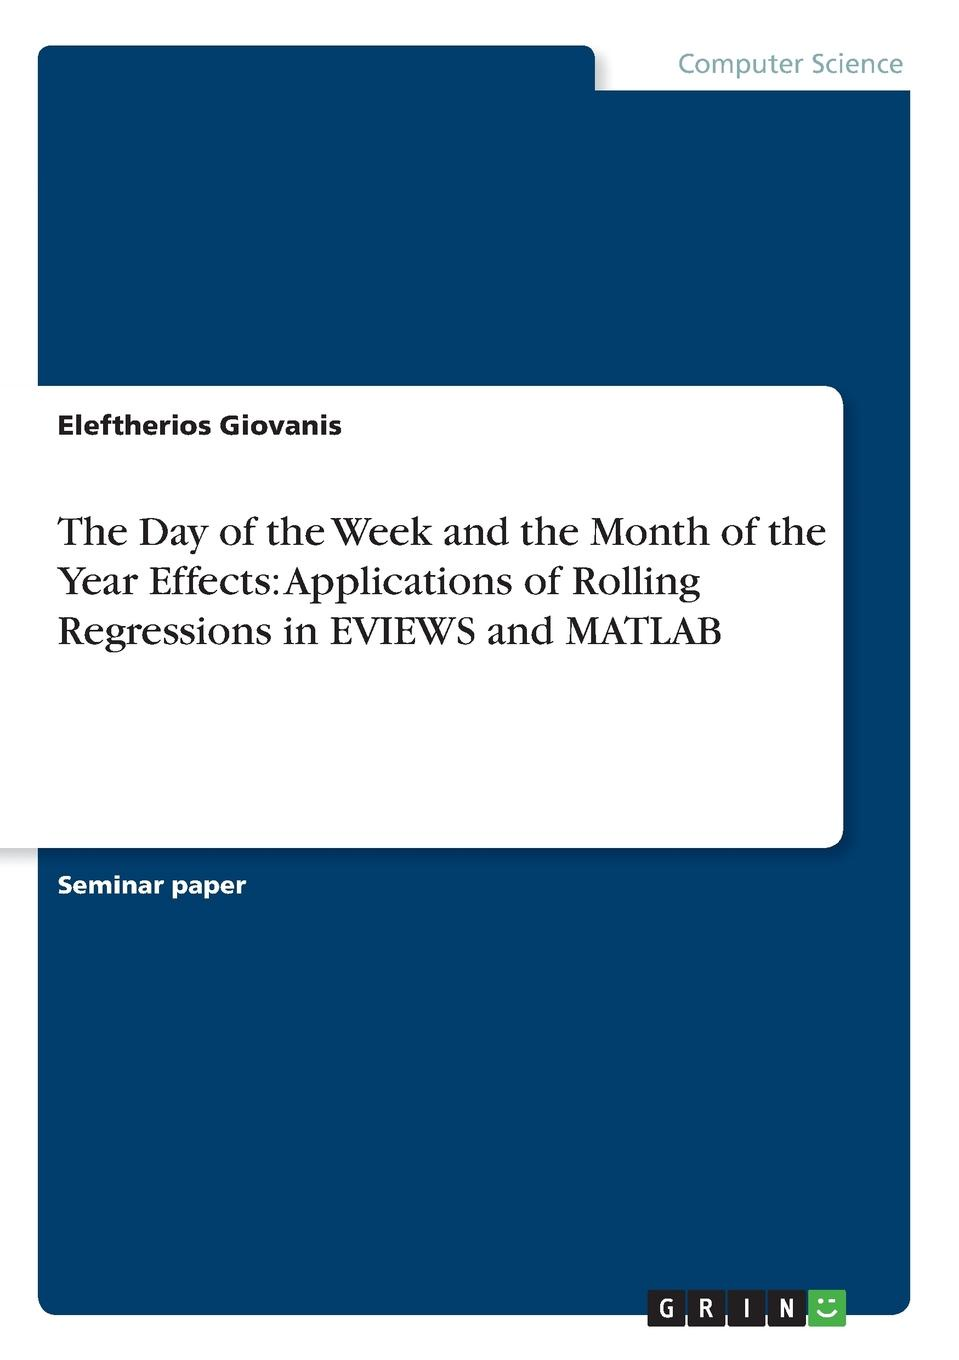 Eleftherios Giovanis The Day of the Week and the Month of the Year Effects. Applications of Rolling Regressions in EVIEWS and MATLAB цена